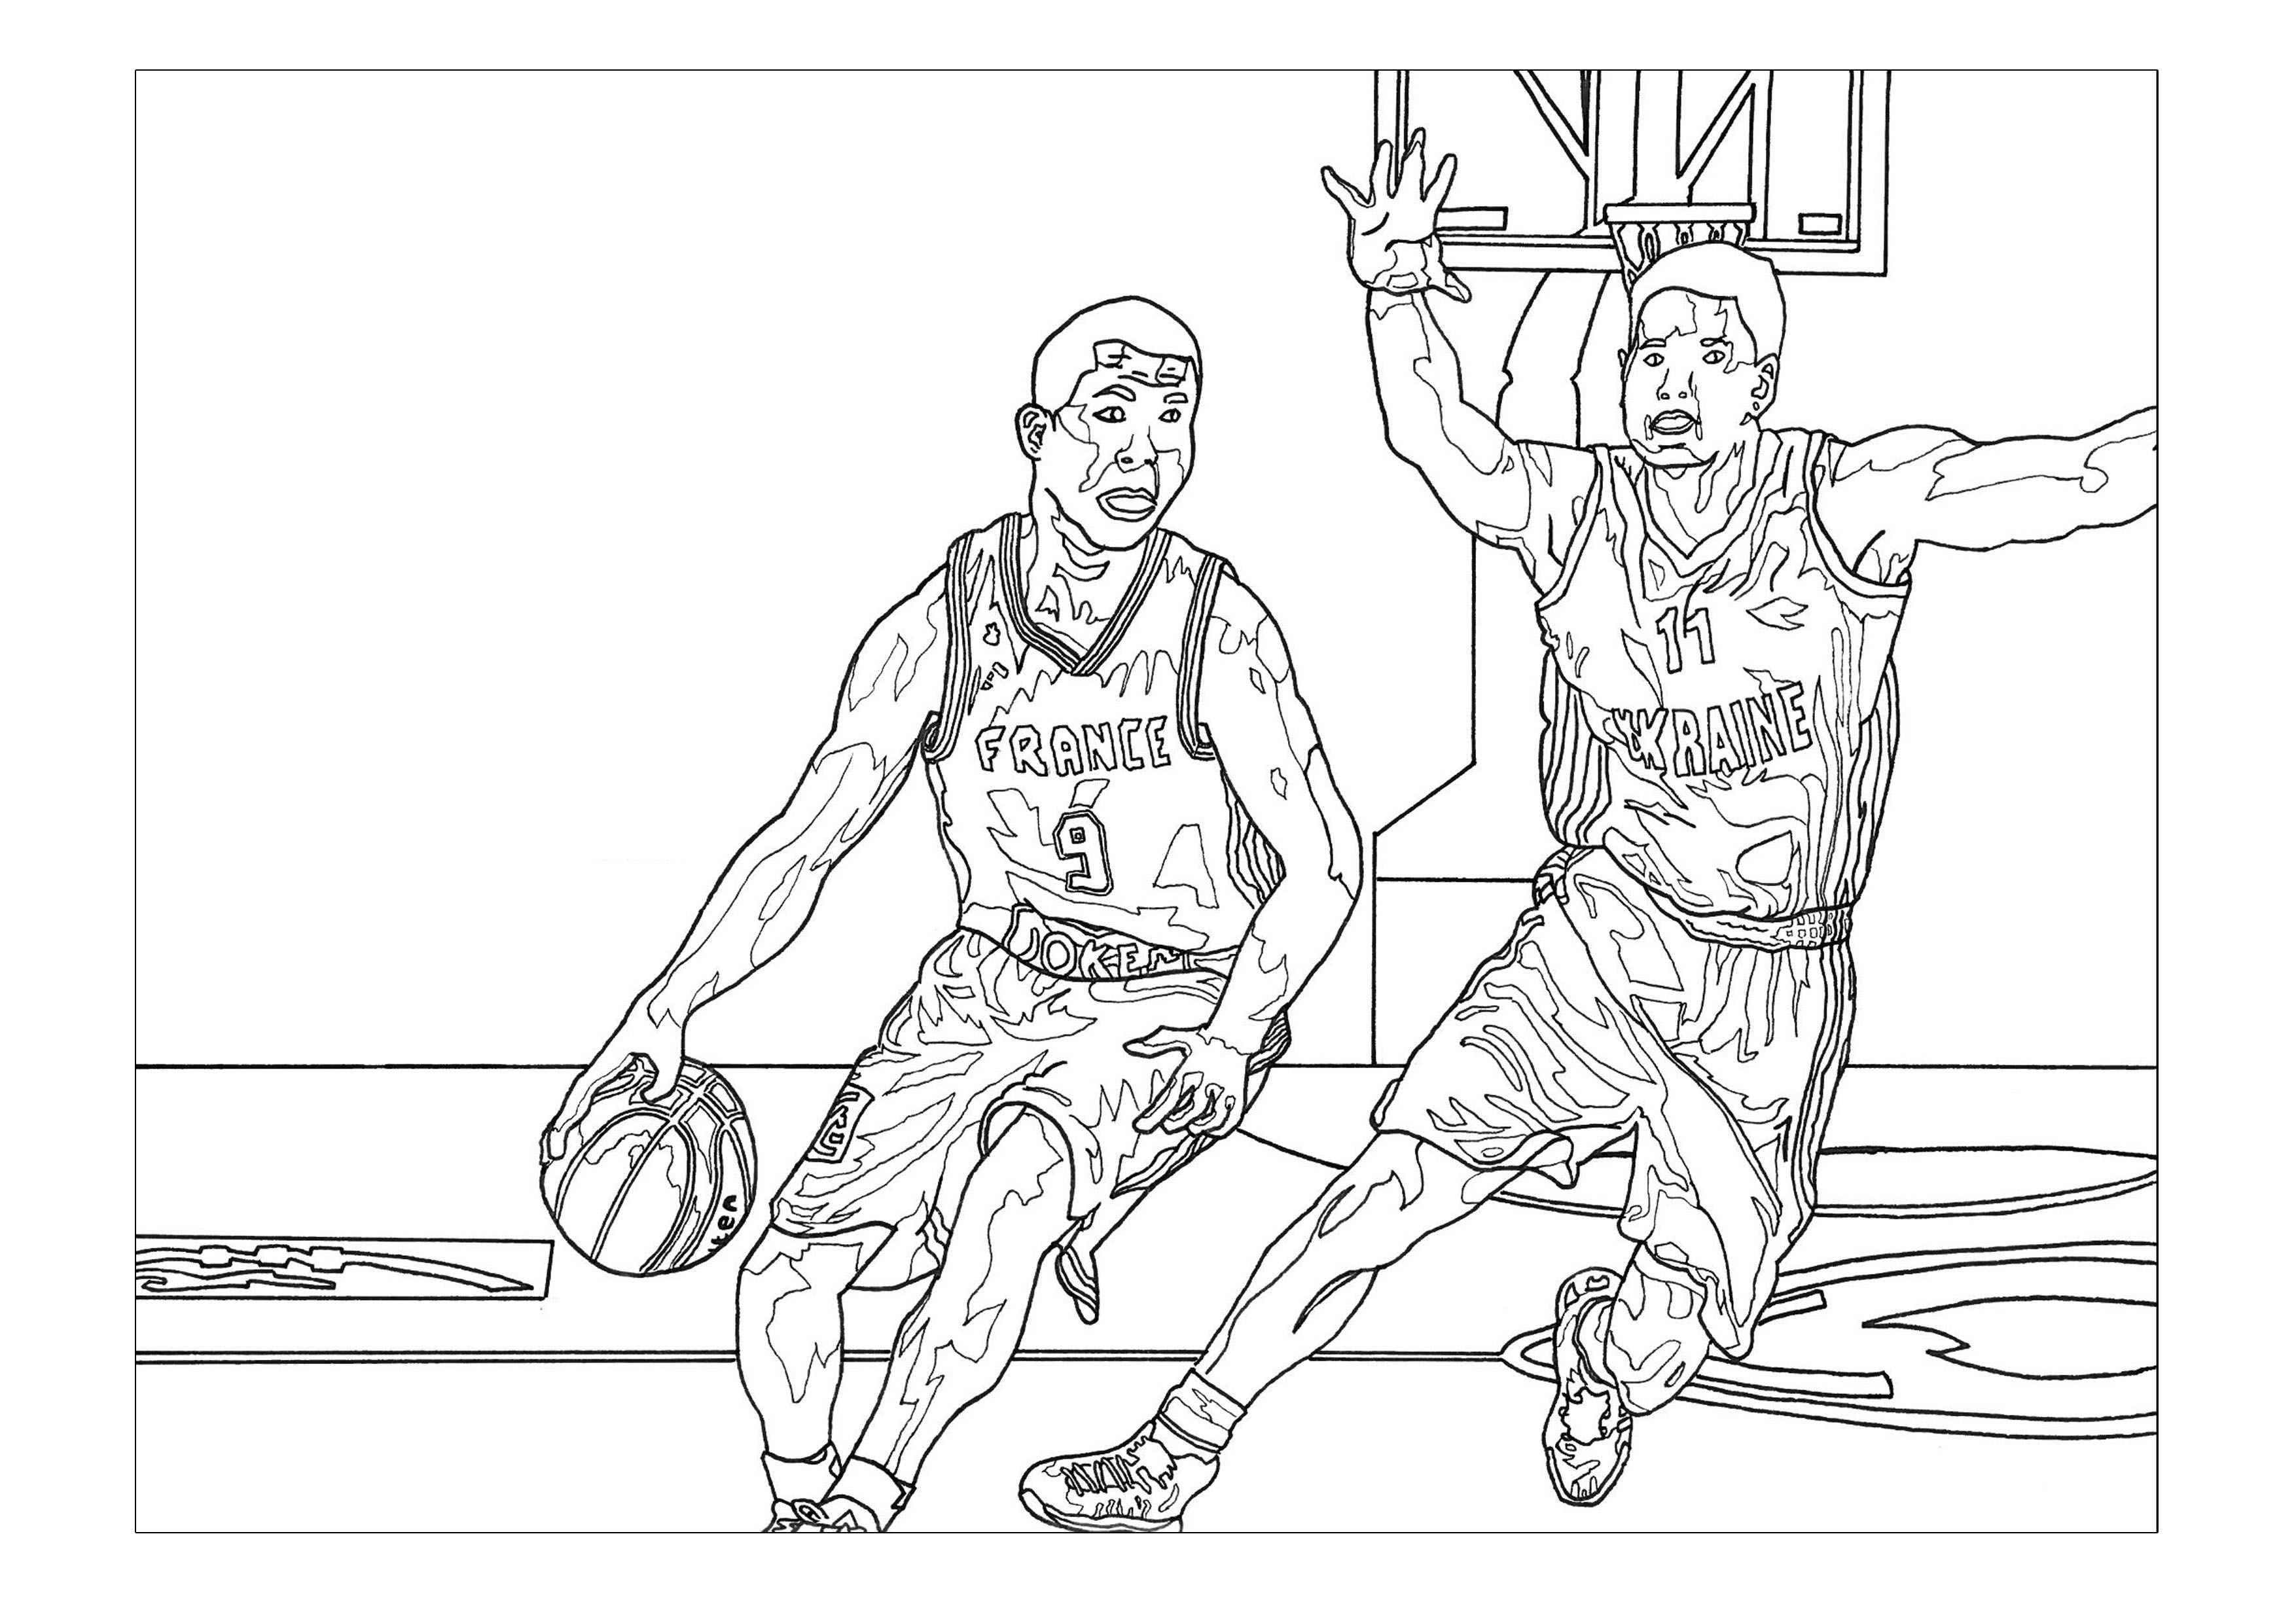 sports colouring pictures sports to color for kids sports kids coloring pages sports pictures colouring